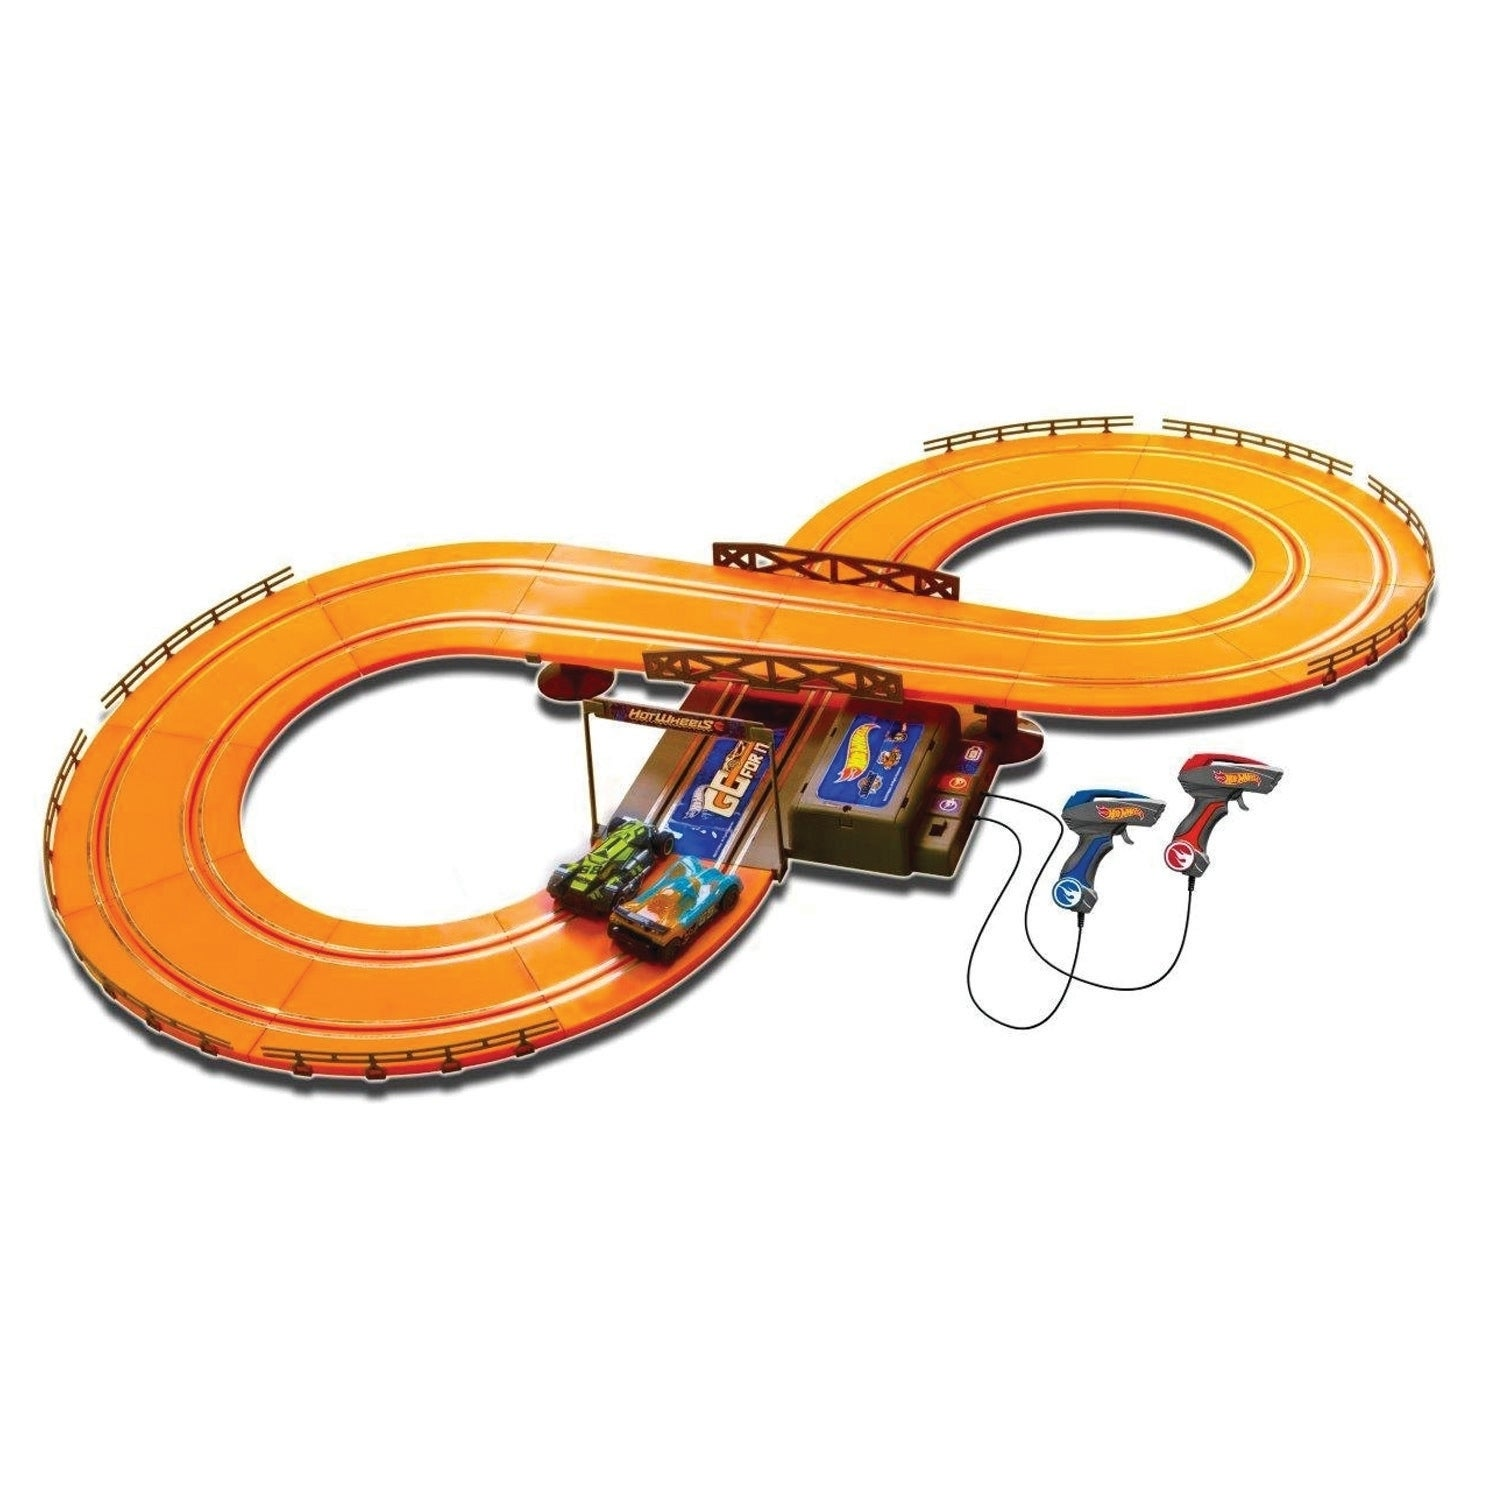 Shop Hot Wheels Battery Operated 91 Ft Slot Track Ships To Wiring Raceway Canada 21540327